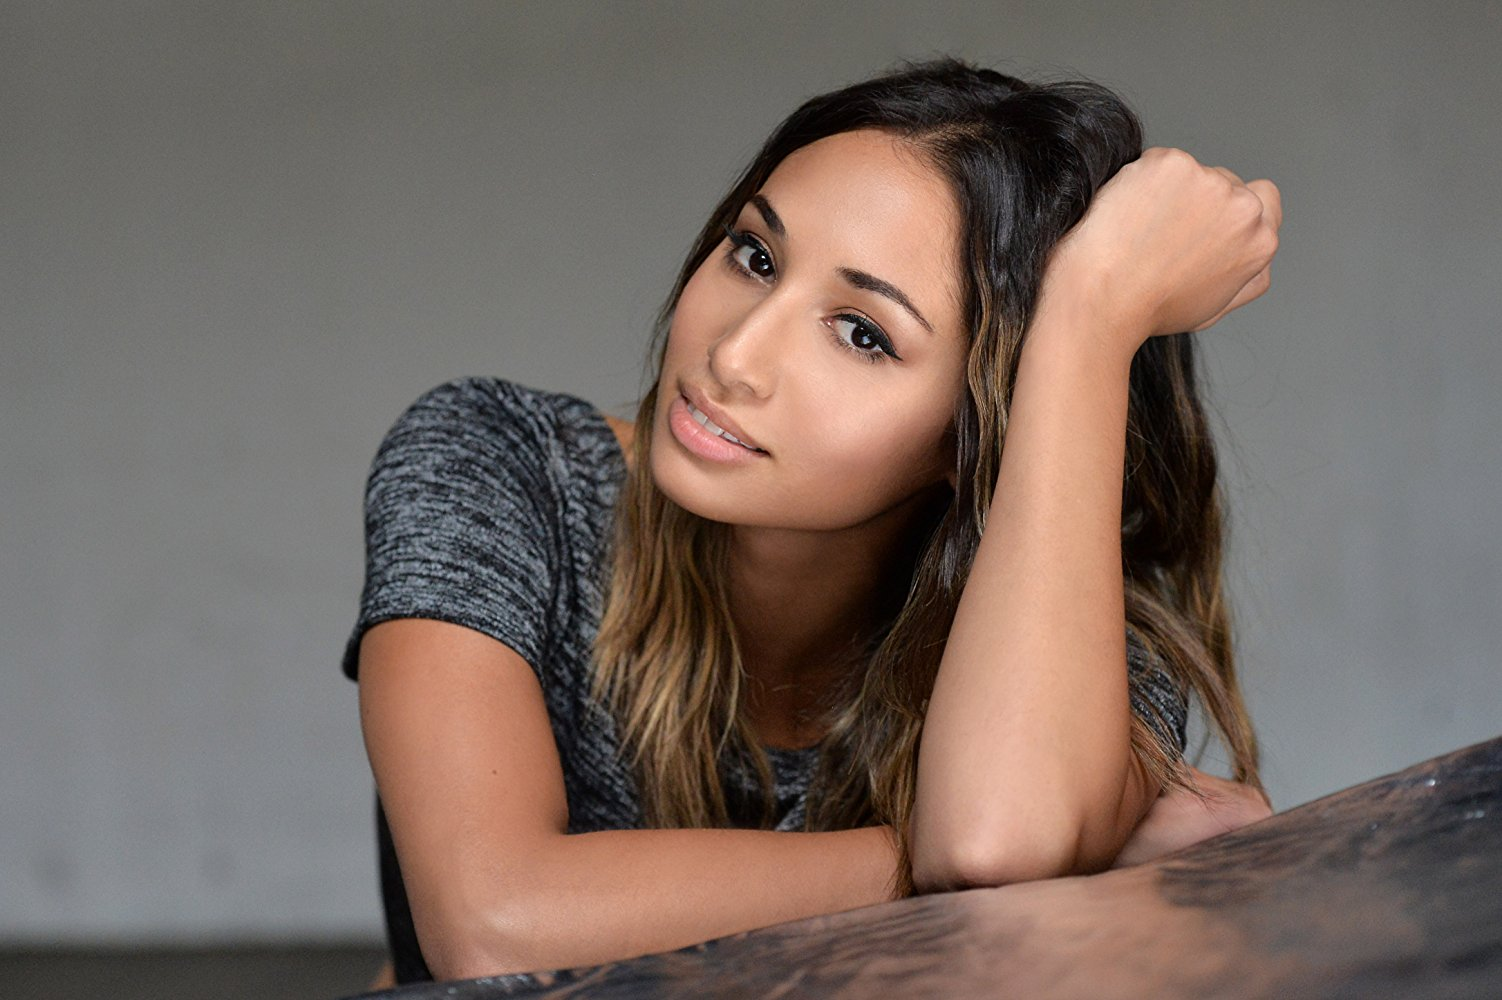 Snapchat Meaghan Rath naked (87 foto and video), Topless, Bikini, Feet, lingerie 2015